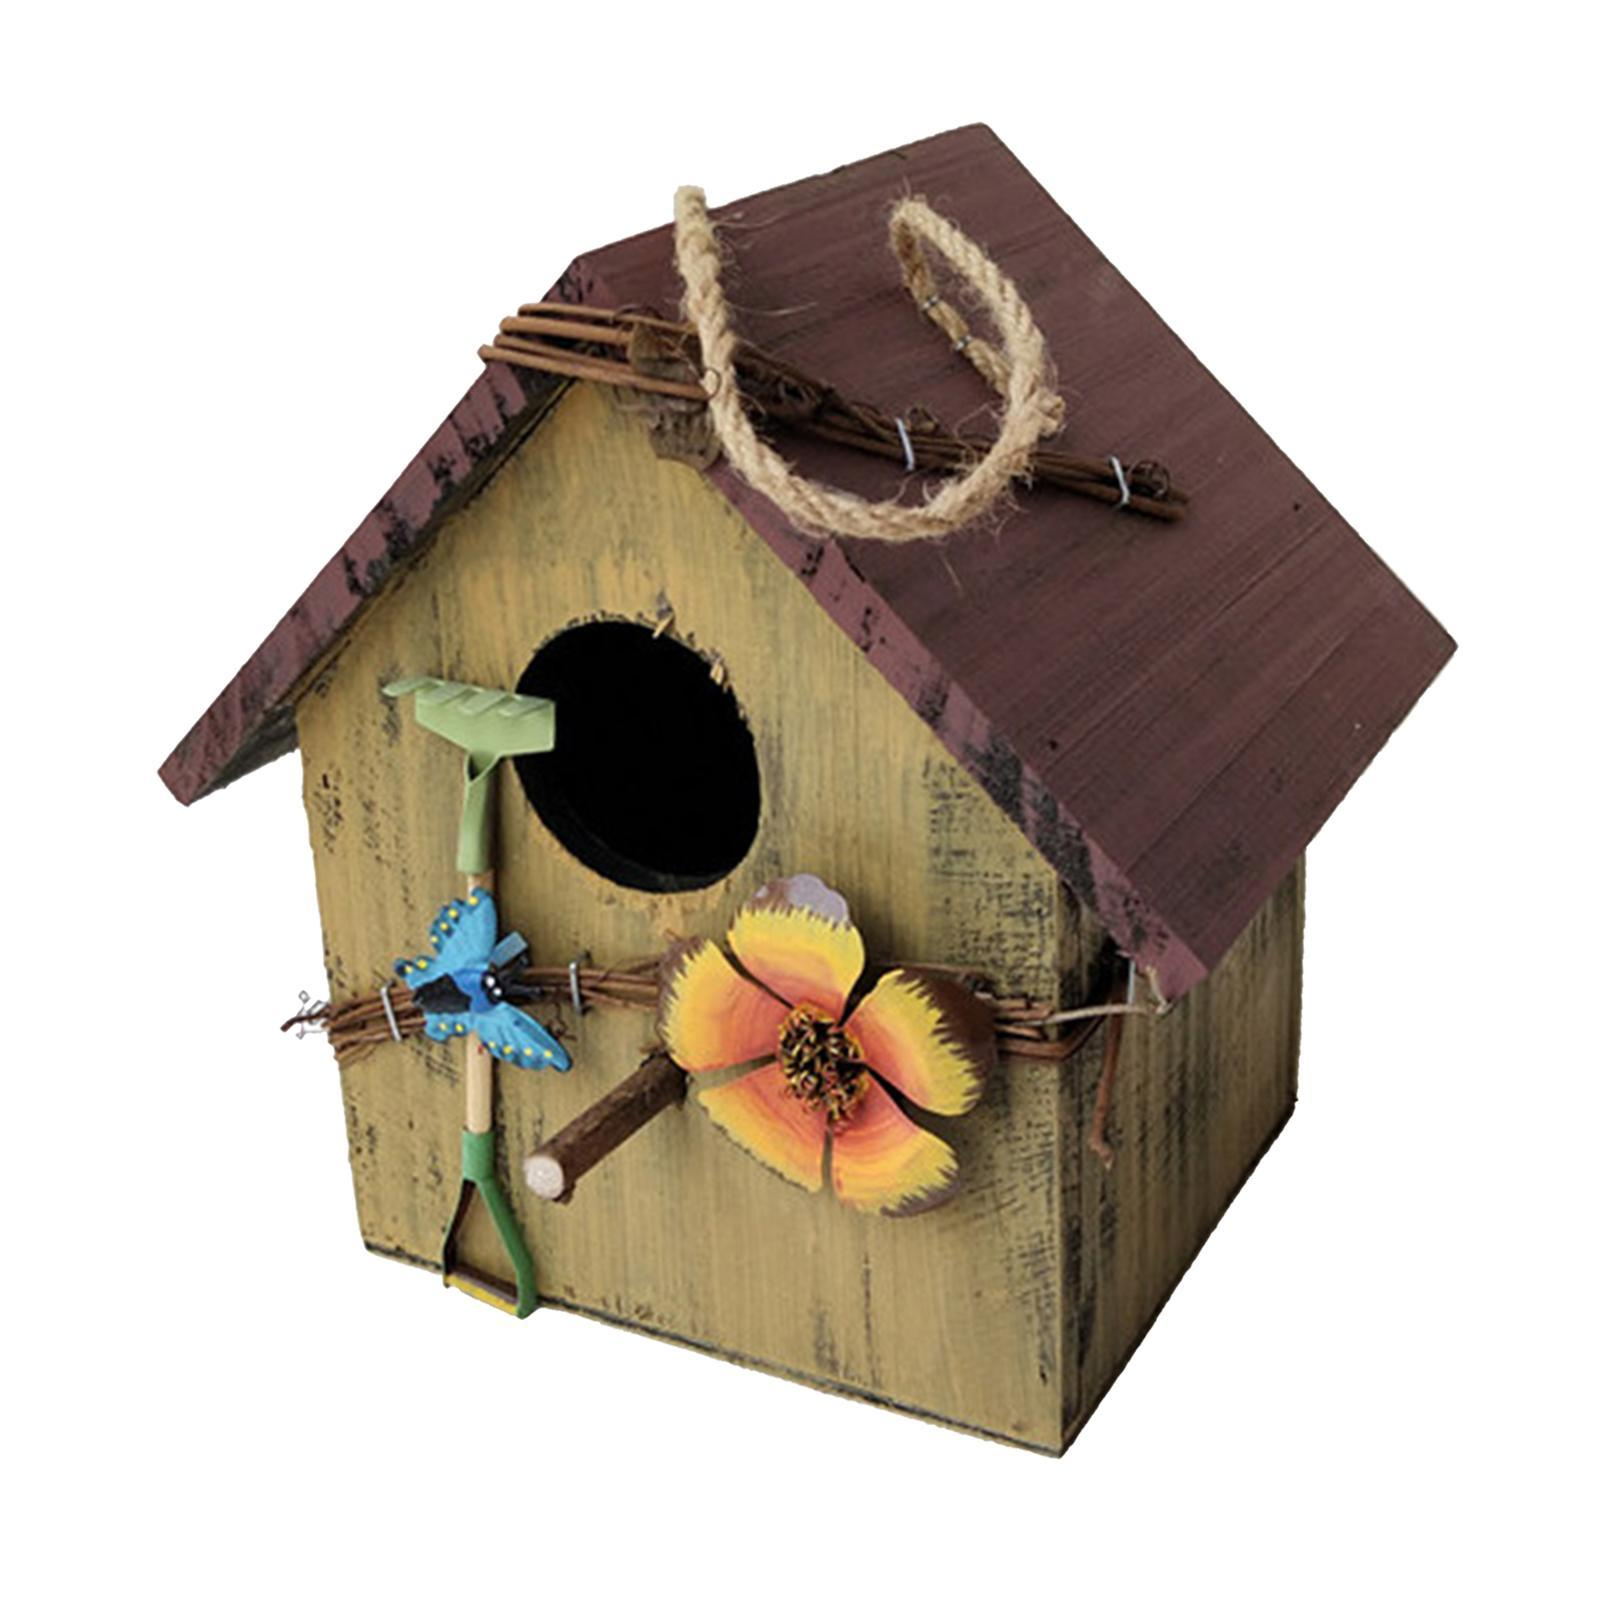 thumbnail 5 - Antique Hand Painted Wood Birdhouse Decorative Outdoor Bird House Garden